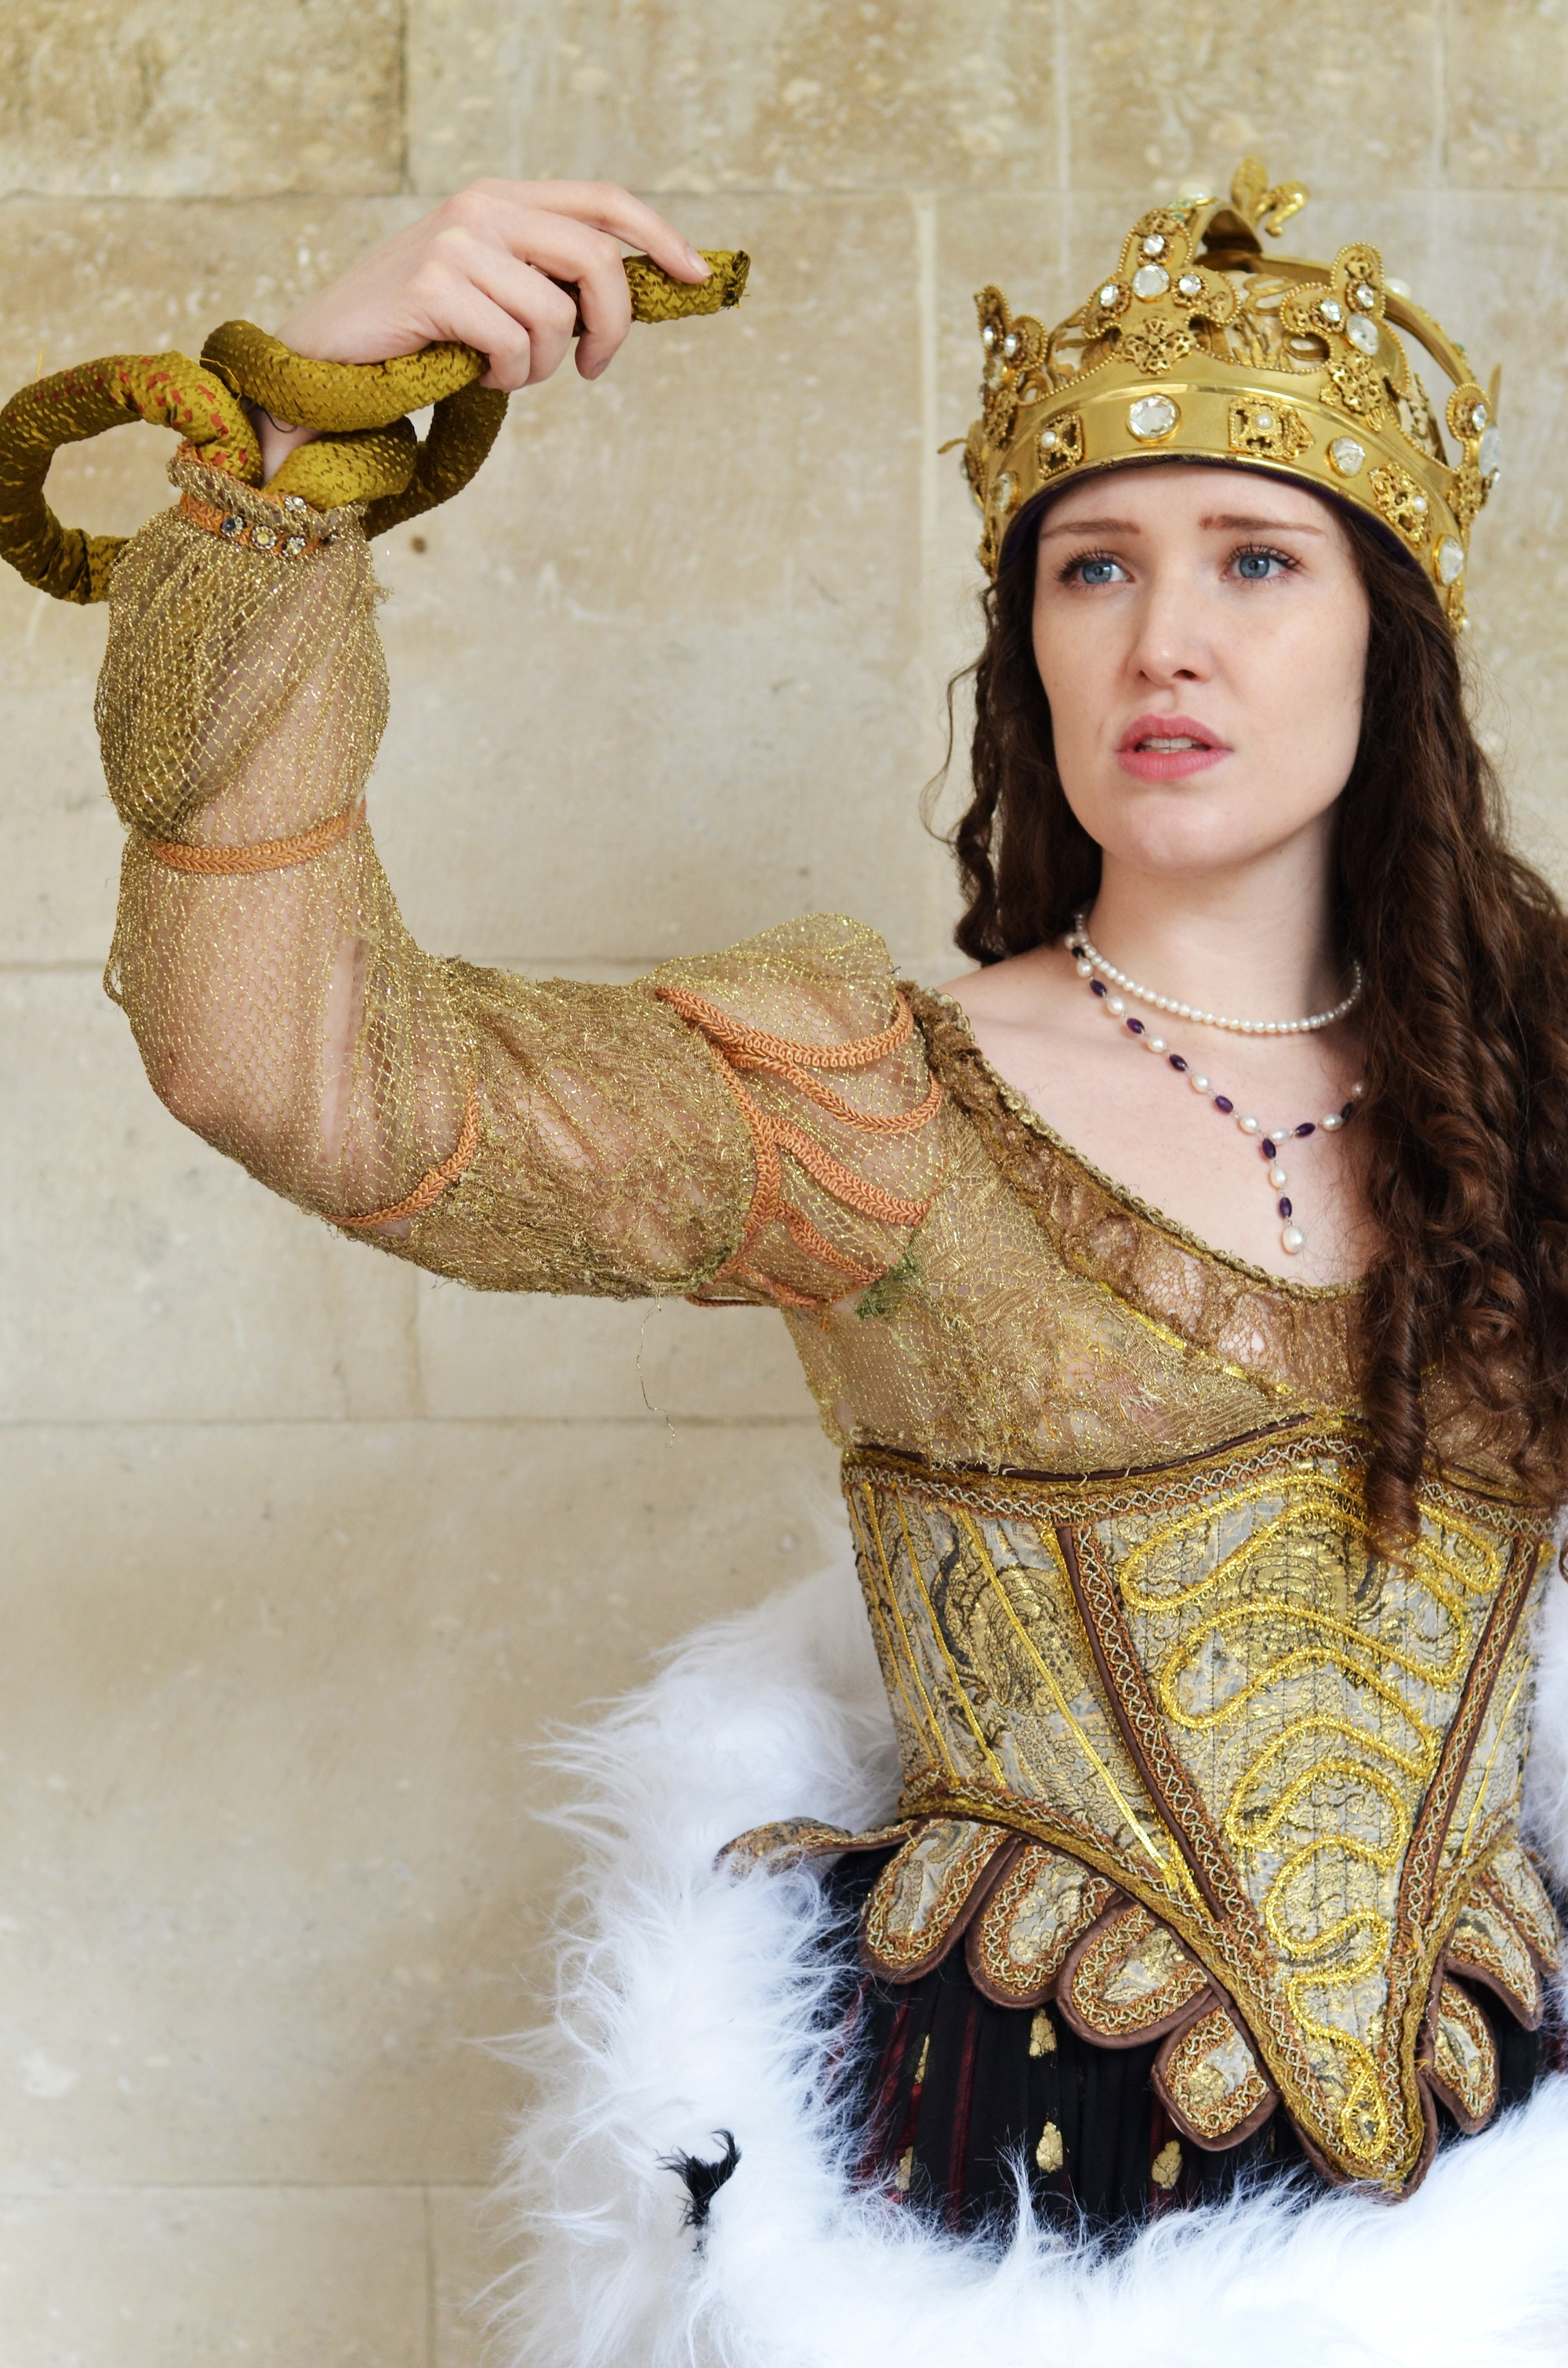 Charlotte Gallagher as Cleopatra